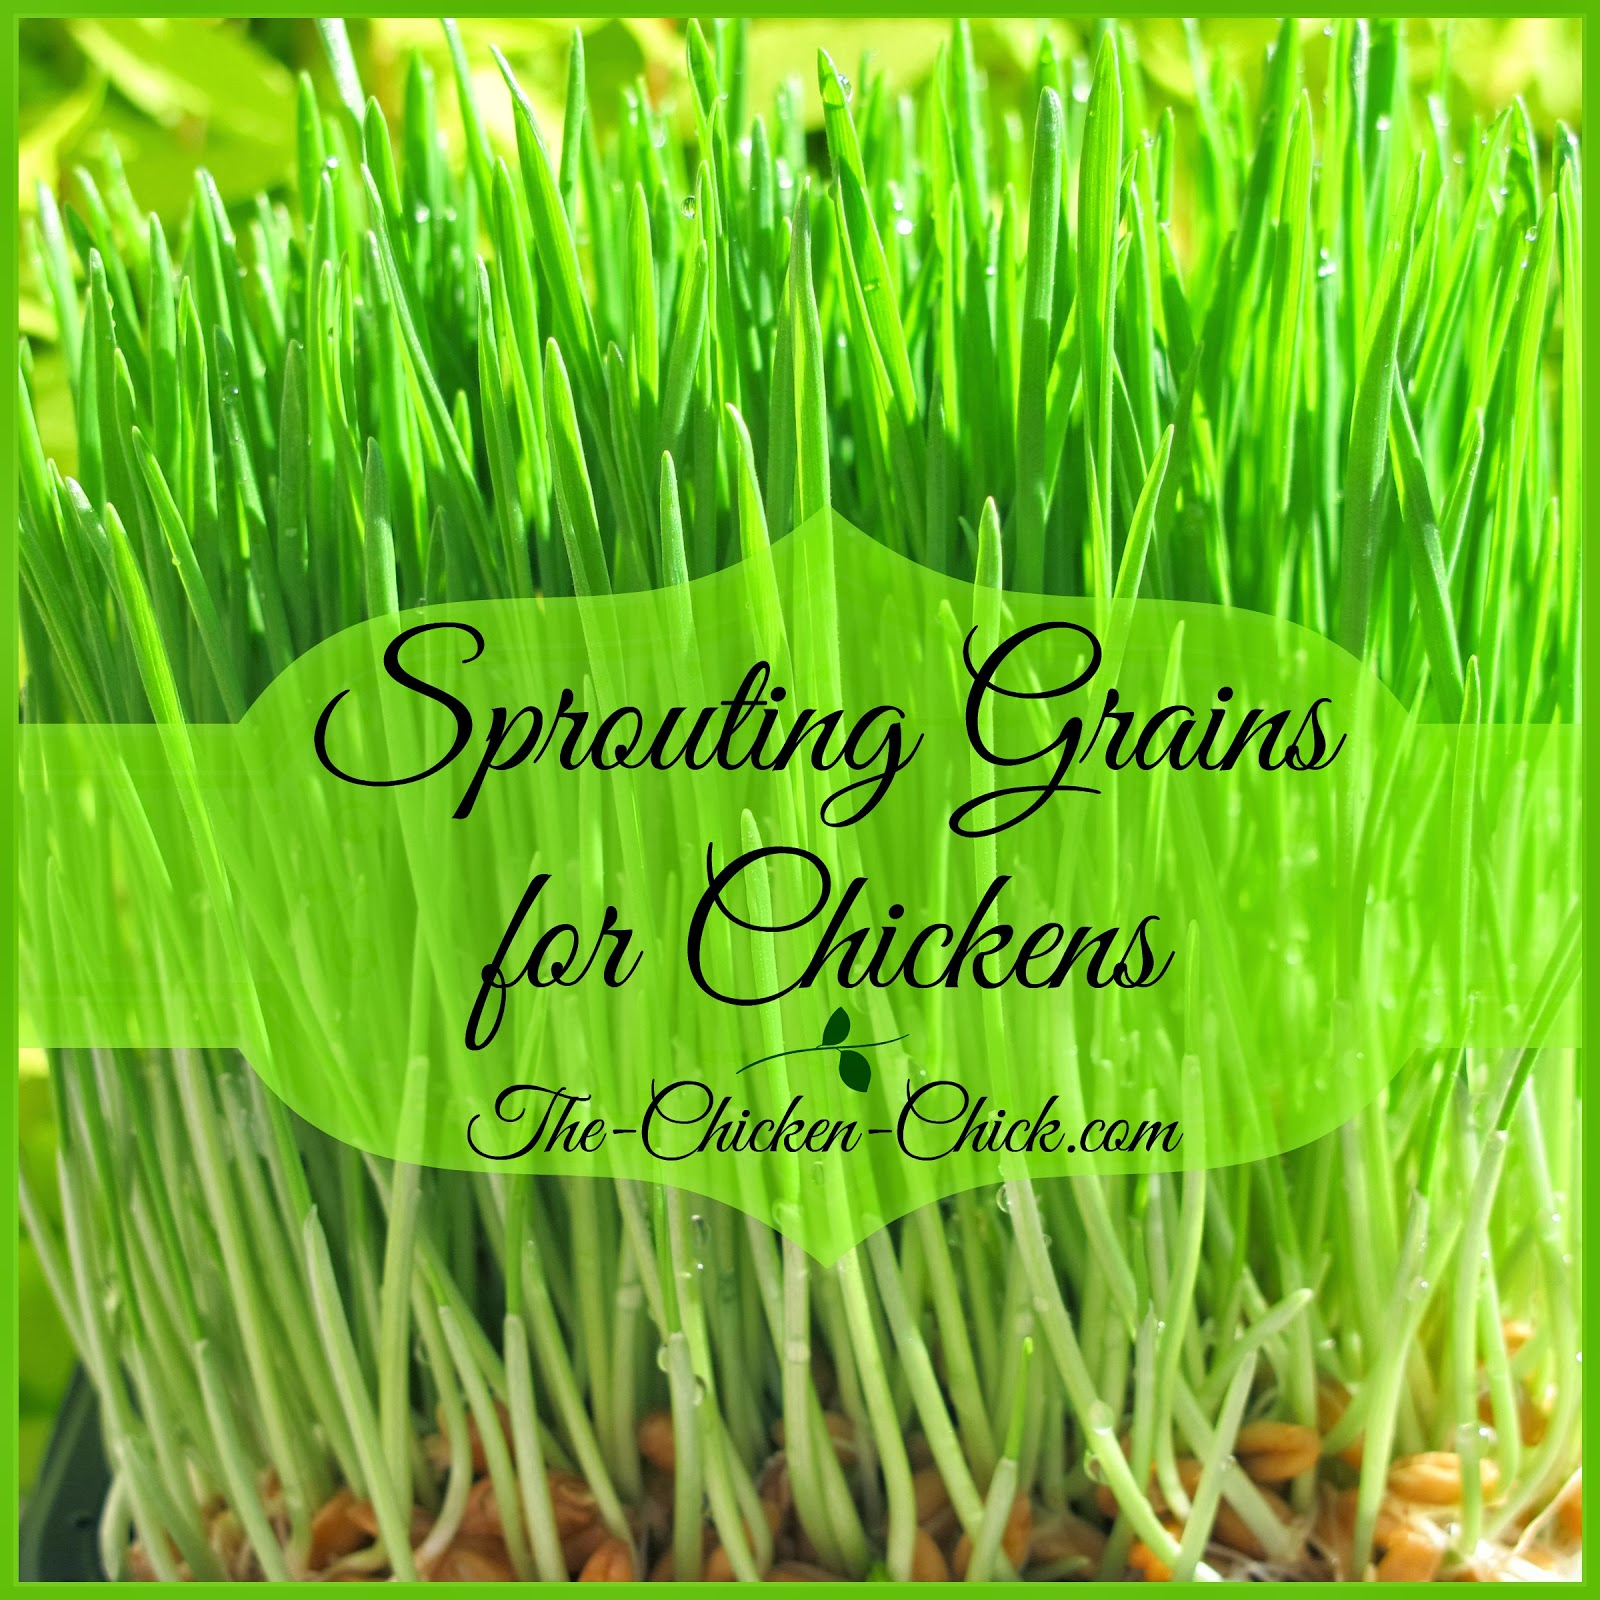 My flock enjoys the many benefits of free-ranging all year long, but in winter, their green, lush, nutritious plant supply is often buried underneath unreasonable amounts of snow, so I decided to experiment with supplementing their diet and their daily entertainment docket with sprouted grains. Sprouts are whole grains or seeds that are grown with water before being fed to the chickens. Sprouting grains is an easy way to provide chickens with fresh, nutritious greens any time of year with very little effort.